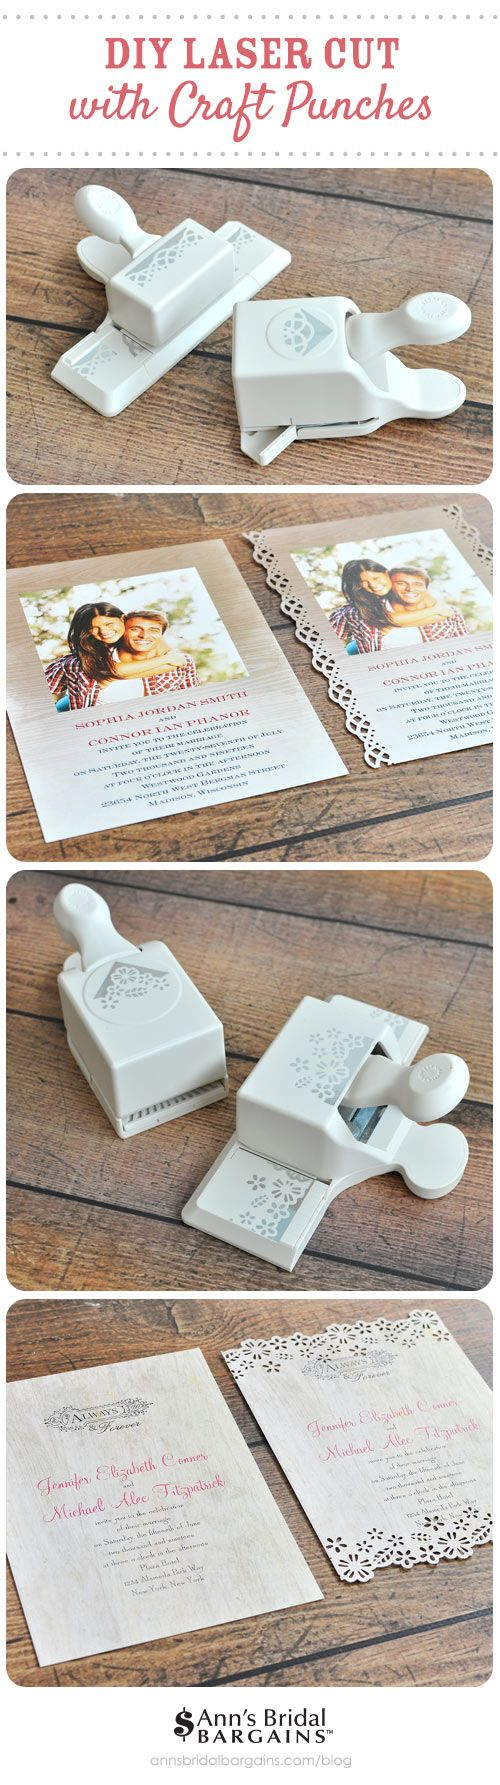 Laser cut wedding invitation DIY: a clever way to get the look of laser for WAY less.